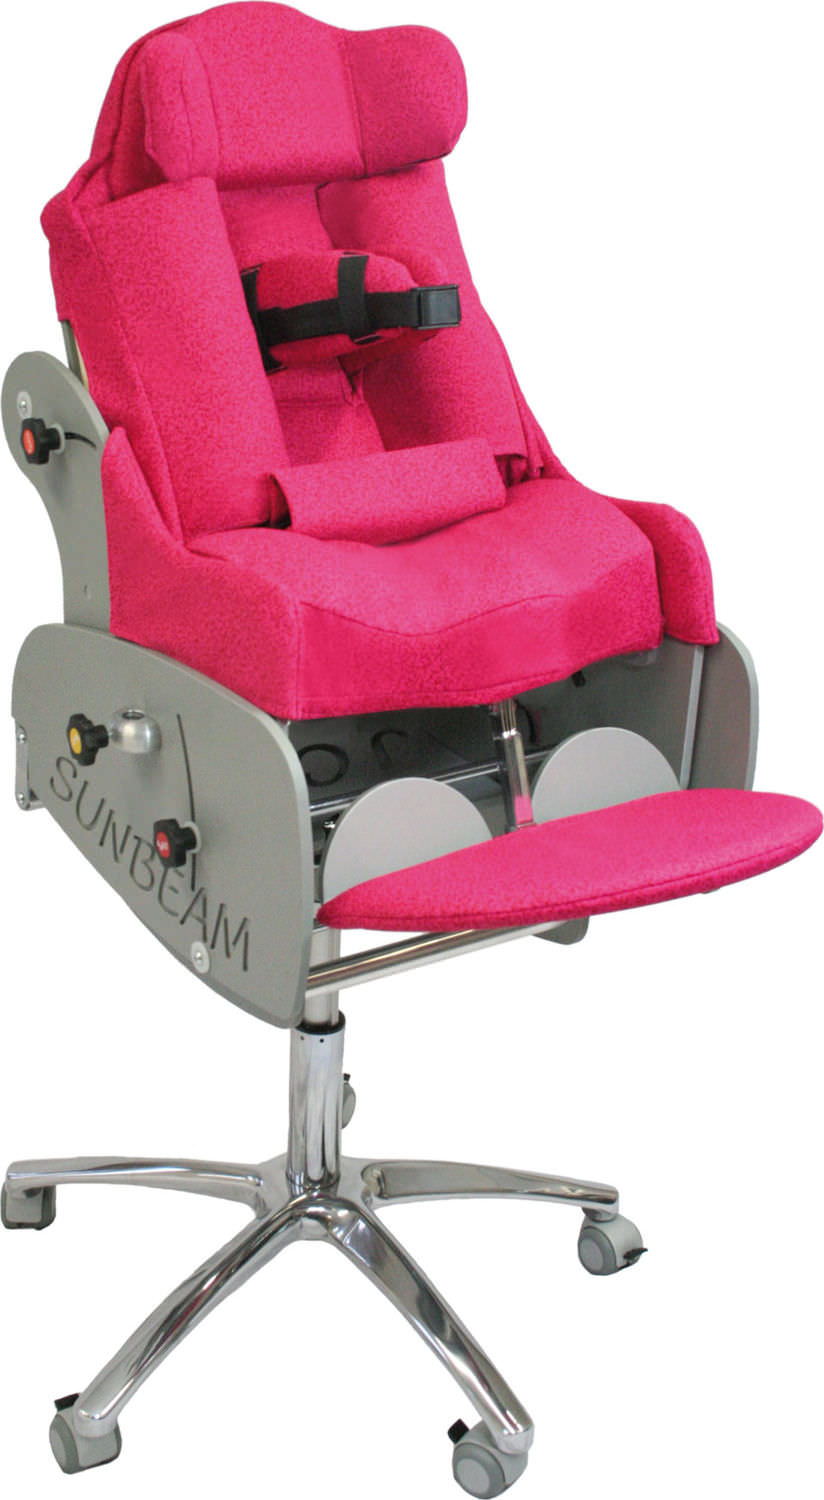 Reclining Patient Chair / On Casters / Pediatric   Sunbeam